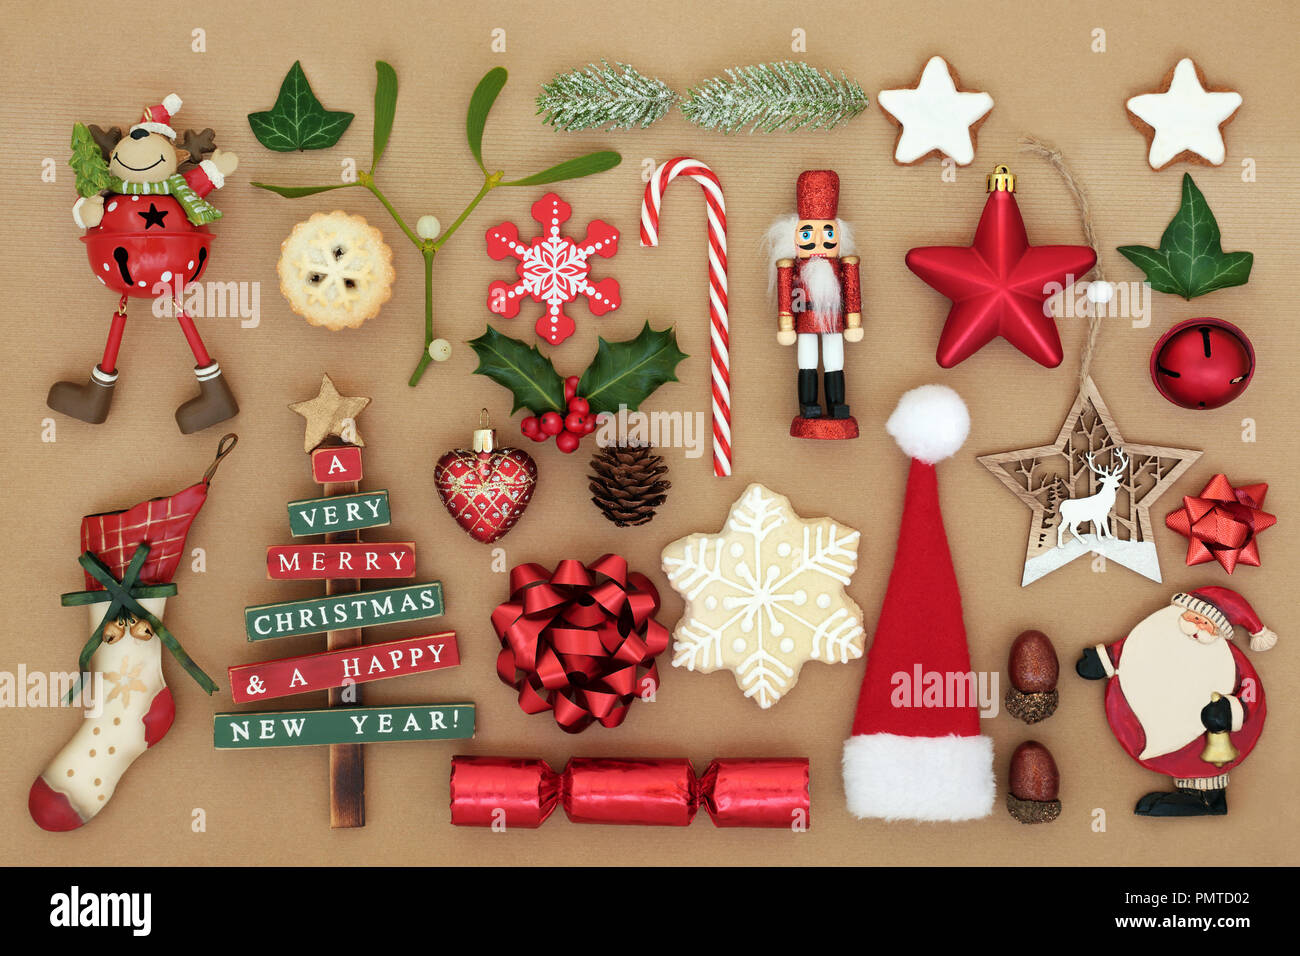 old fashioned christmas tree decorations and baubles with winter flora food and traditional symbols on brown paper background